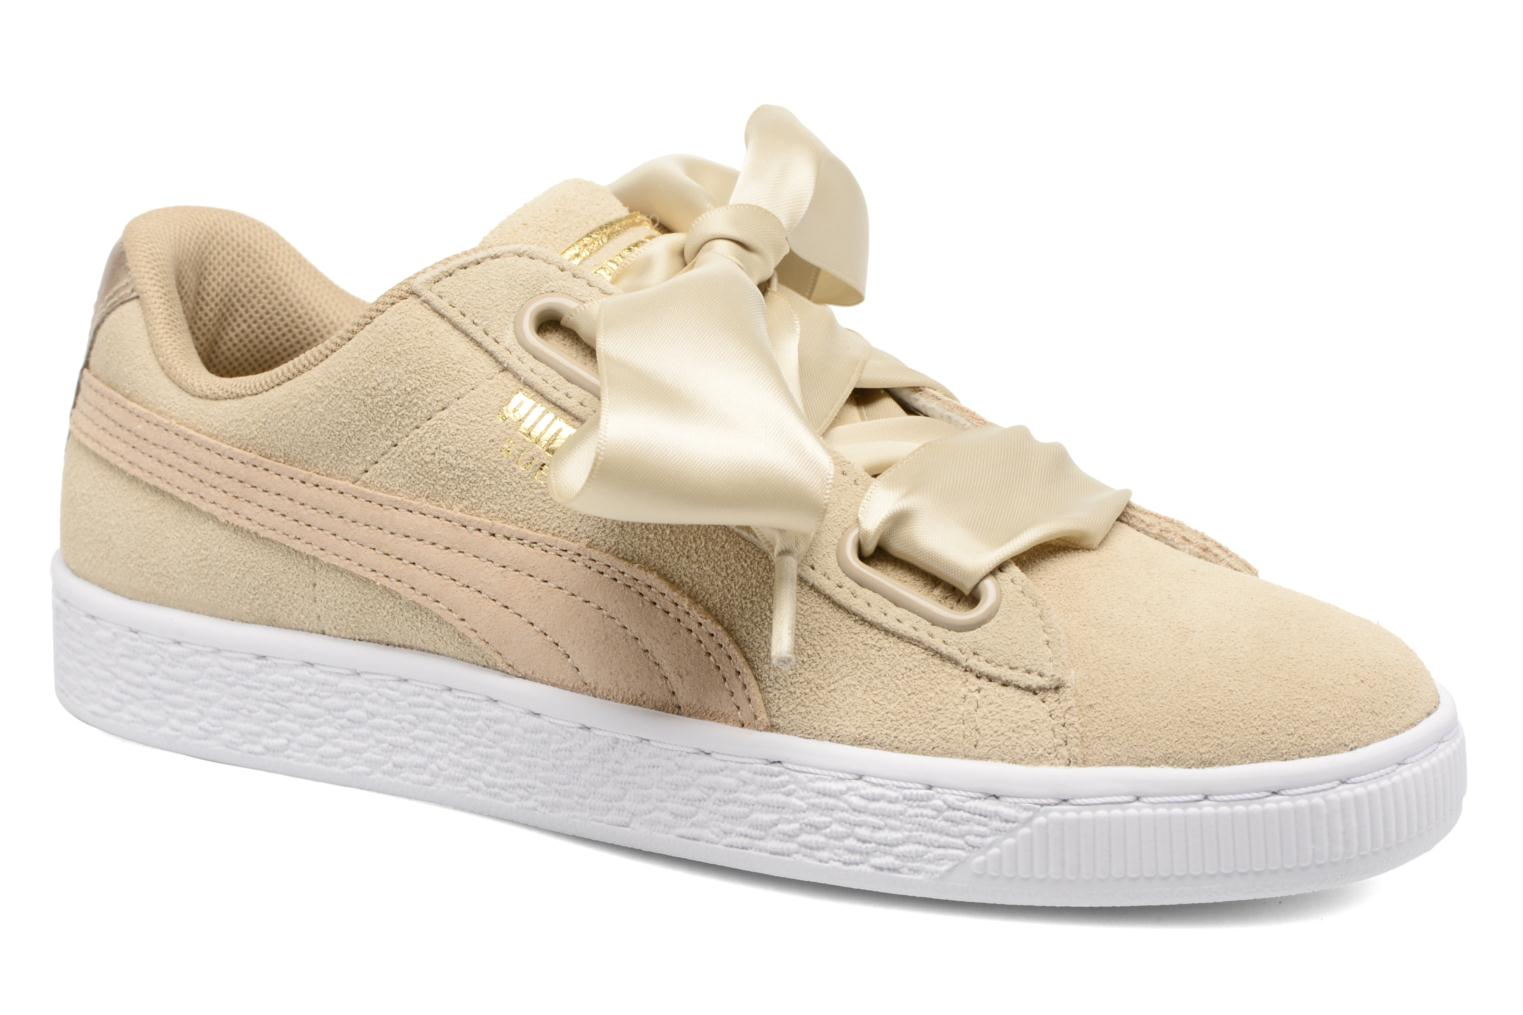 Basket heart Msafari Wn's Beige